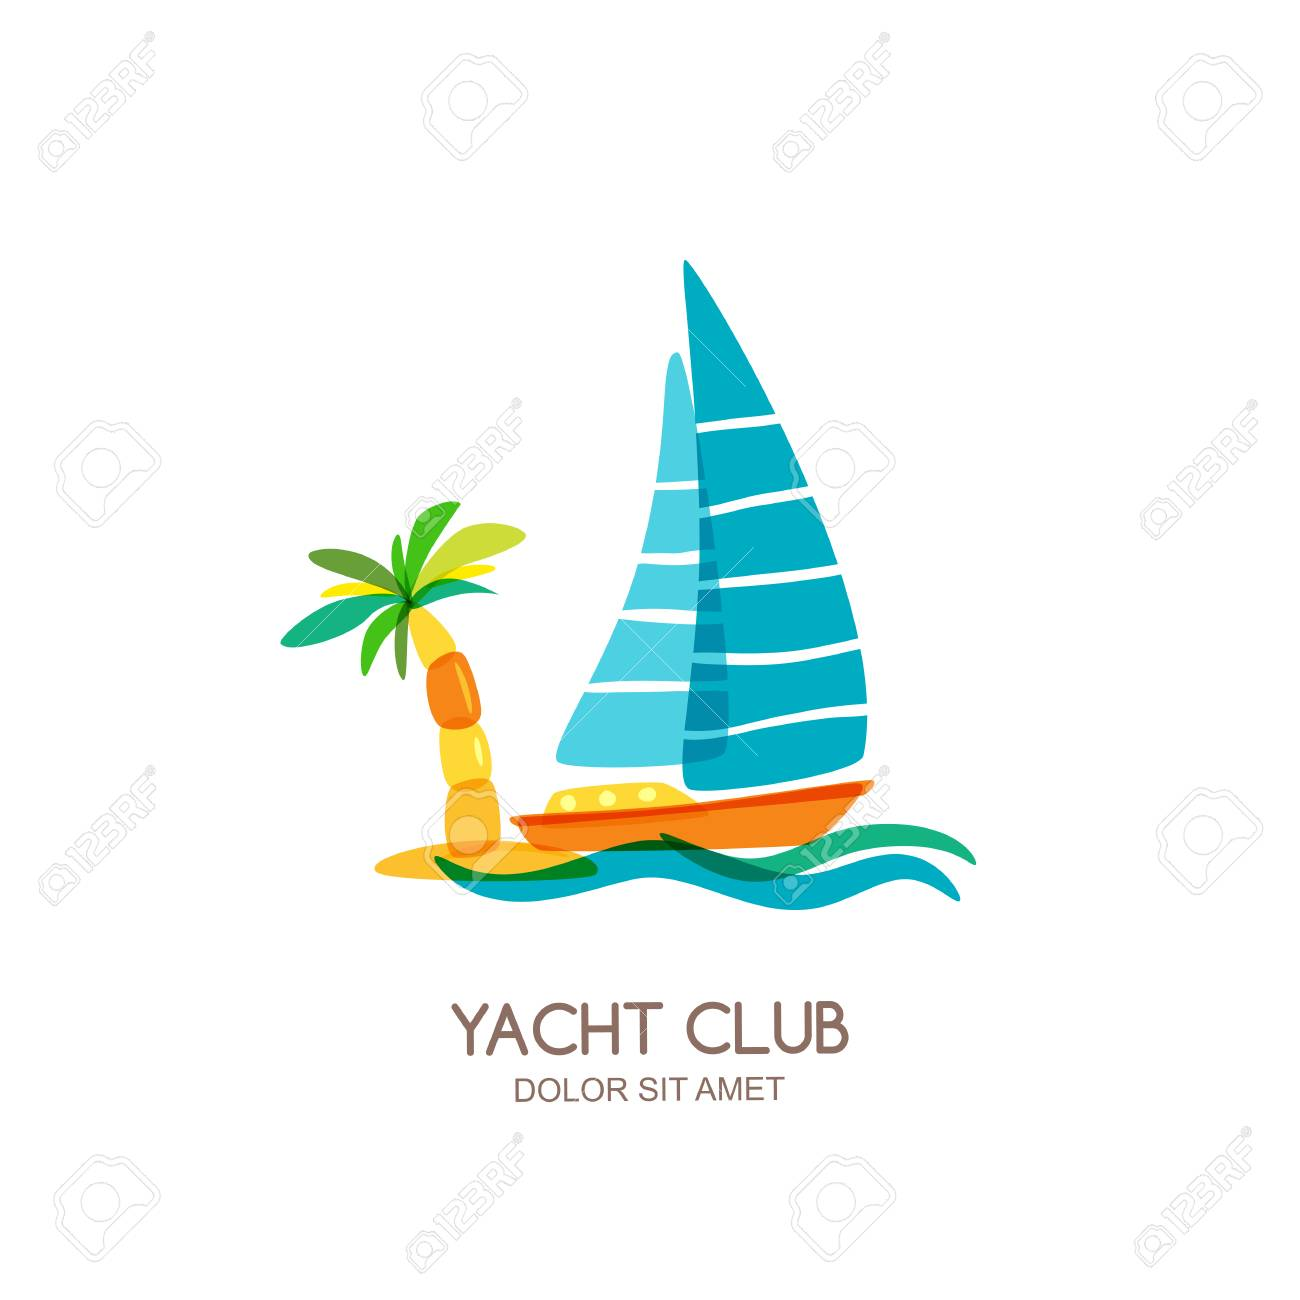 vector yacht club logo design template sailing boat and palm